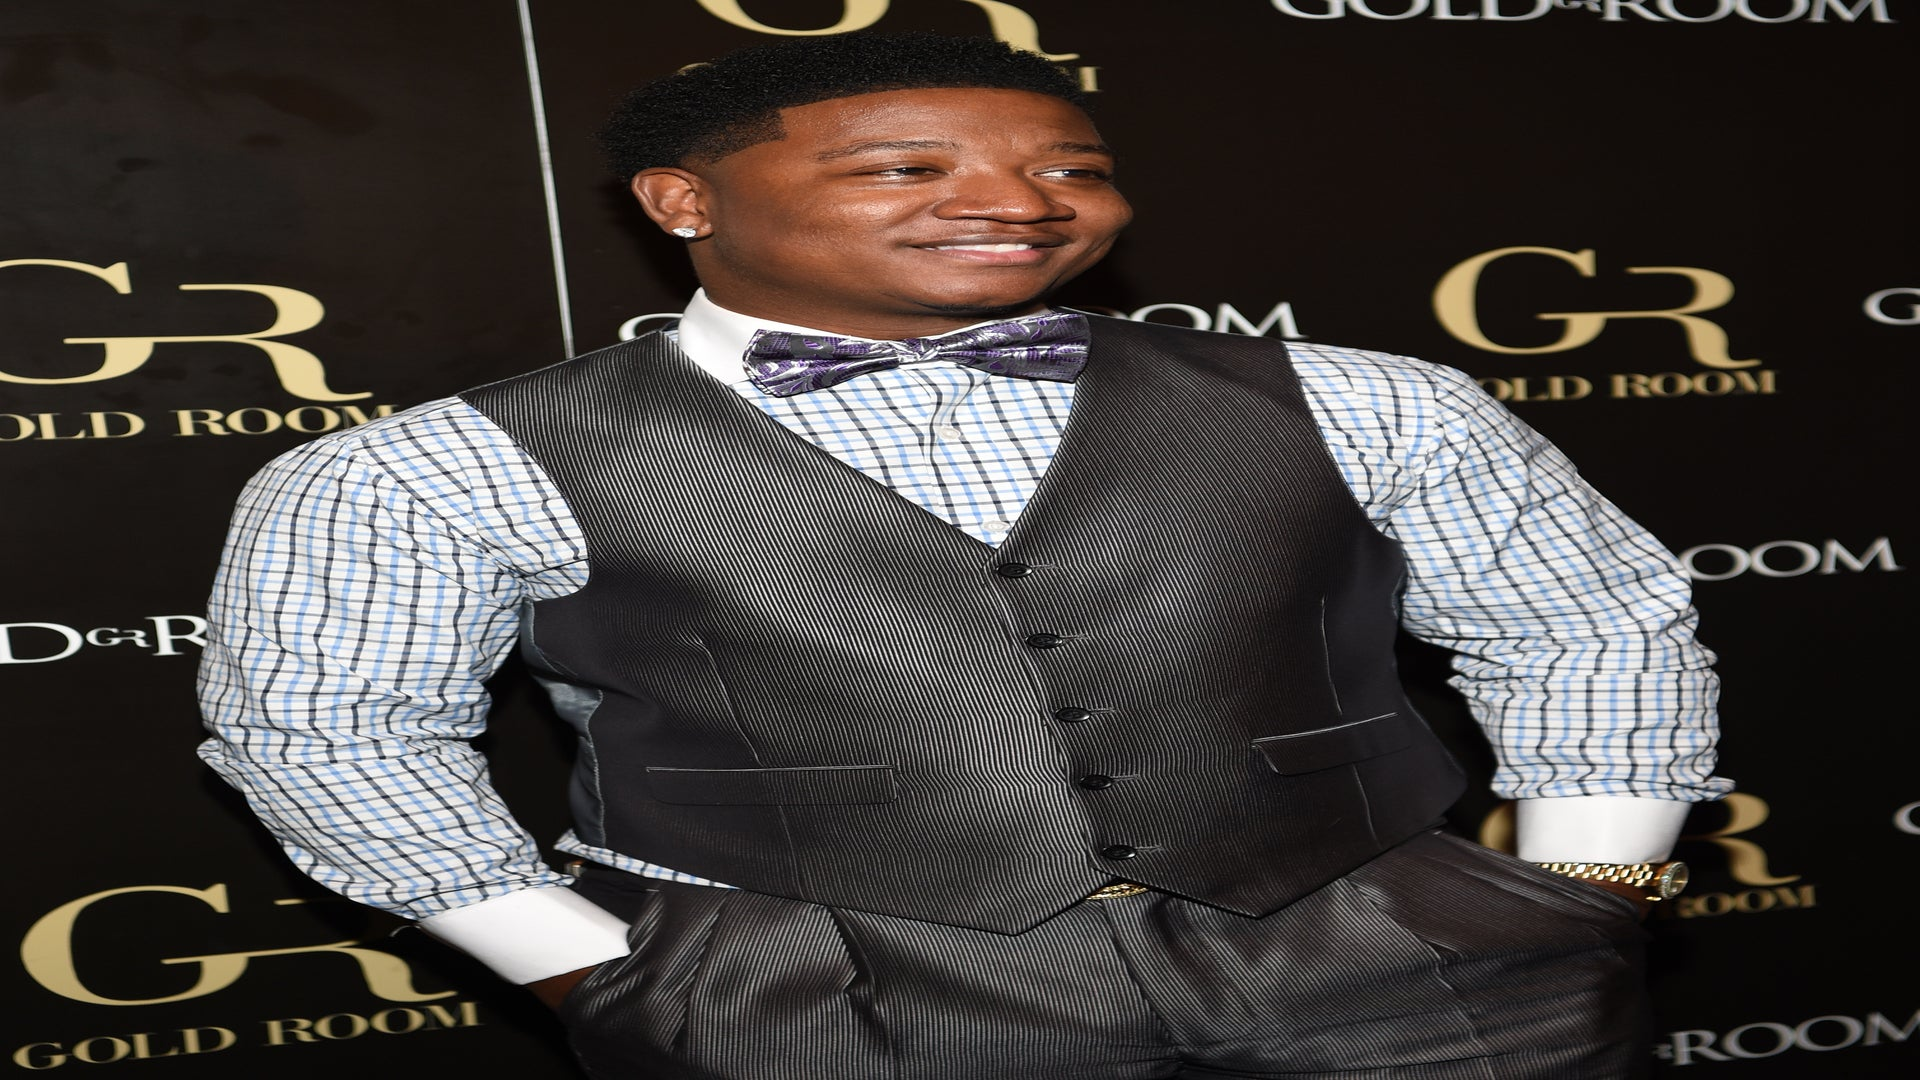 I Have So Many Questions About Yung Joc's Hair